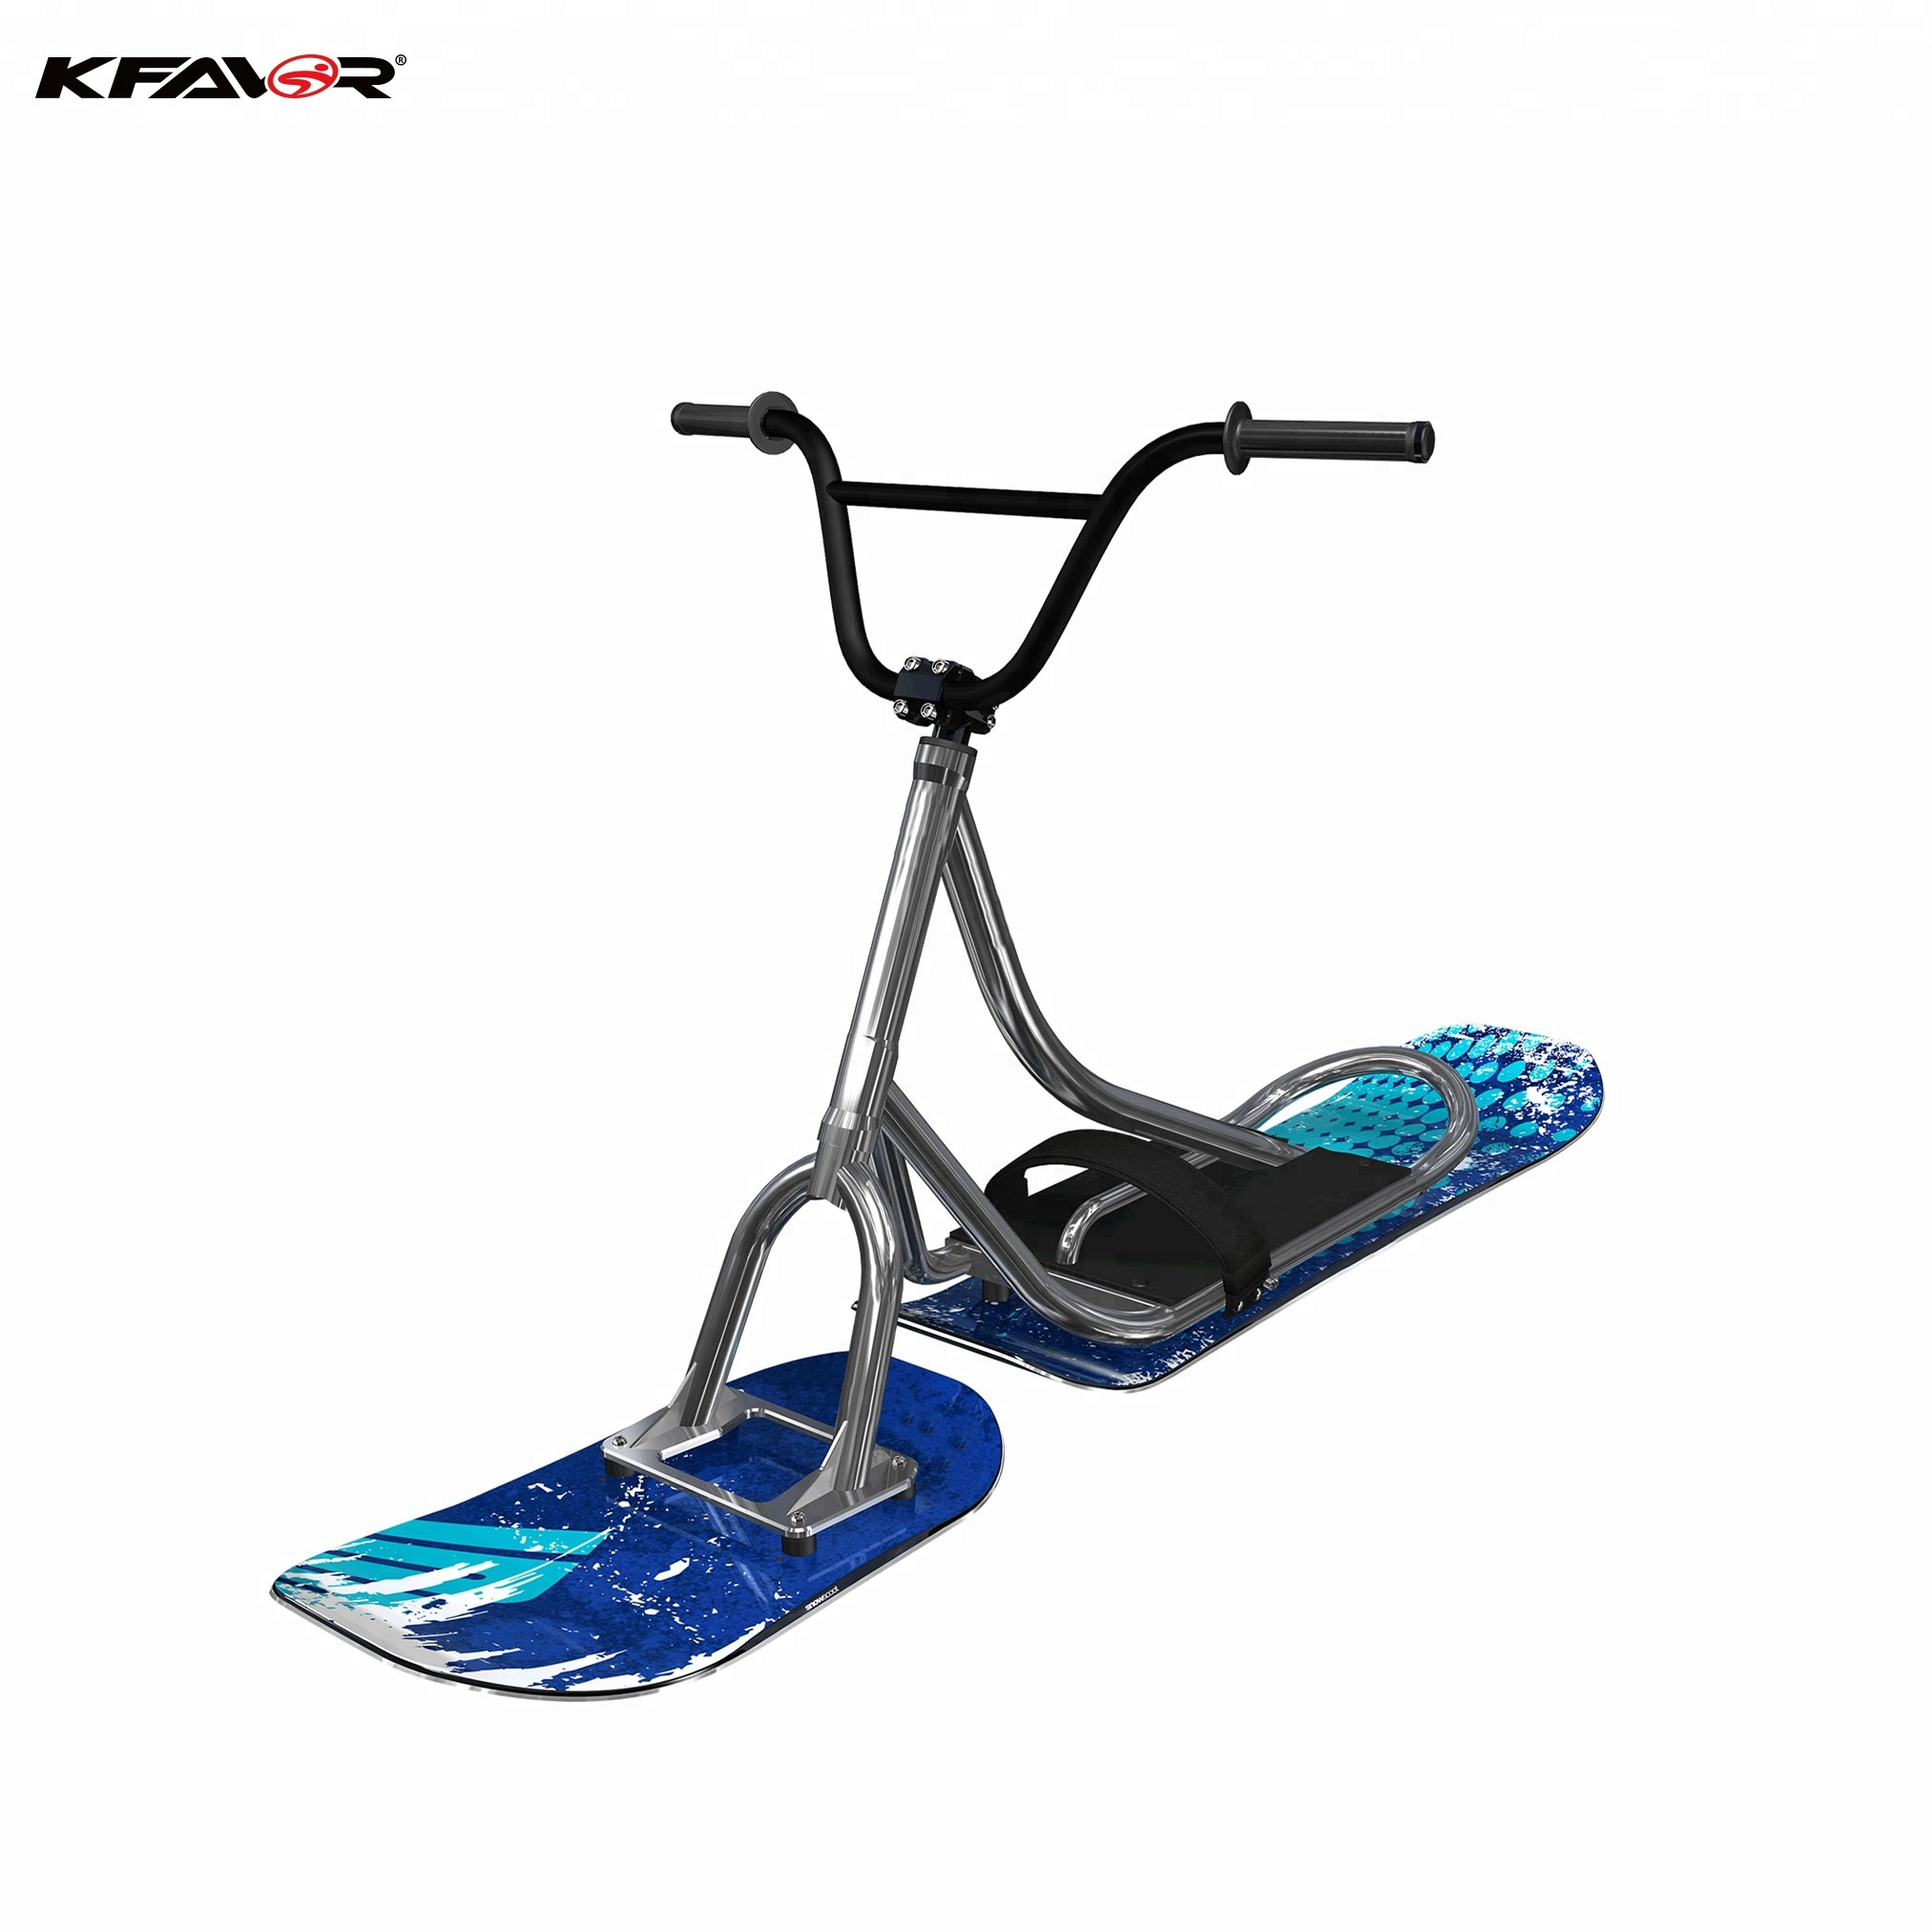 Ski Bike For Sale >> Hot Sale New Snow Scooter Ski Bike Buy New Snow Scooter Snow Scooter Ski Bike Product On Alibaba Com